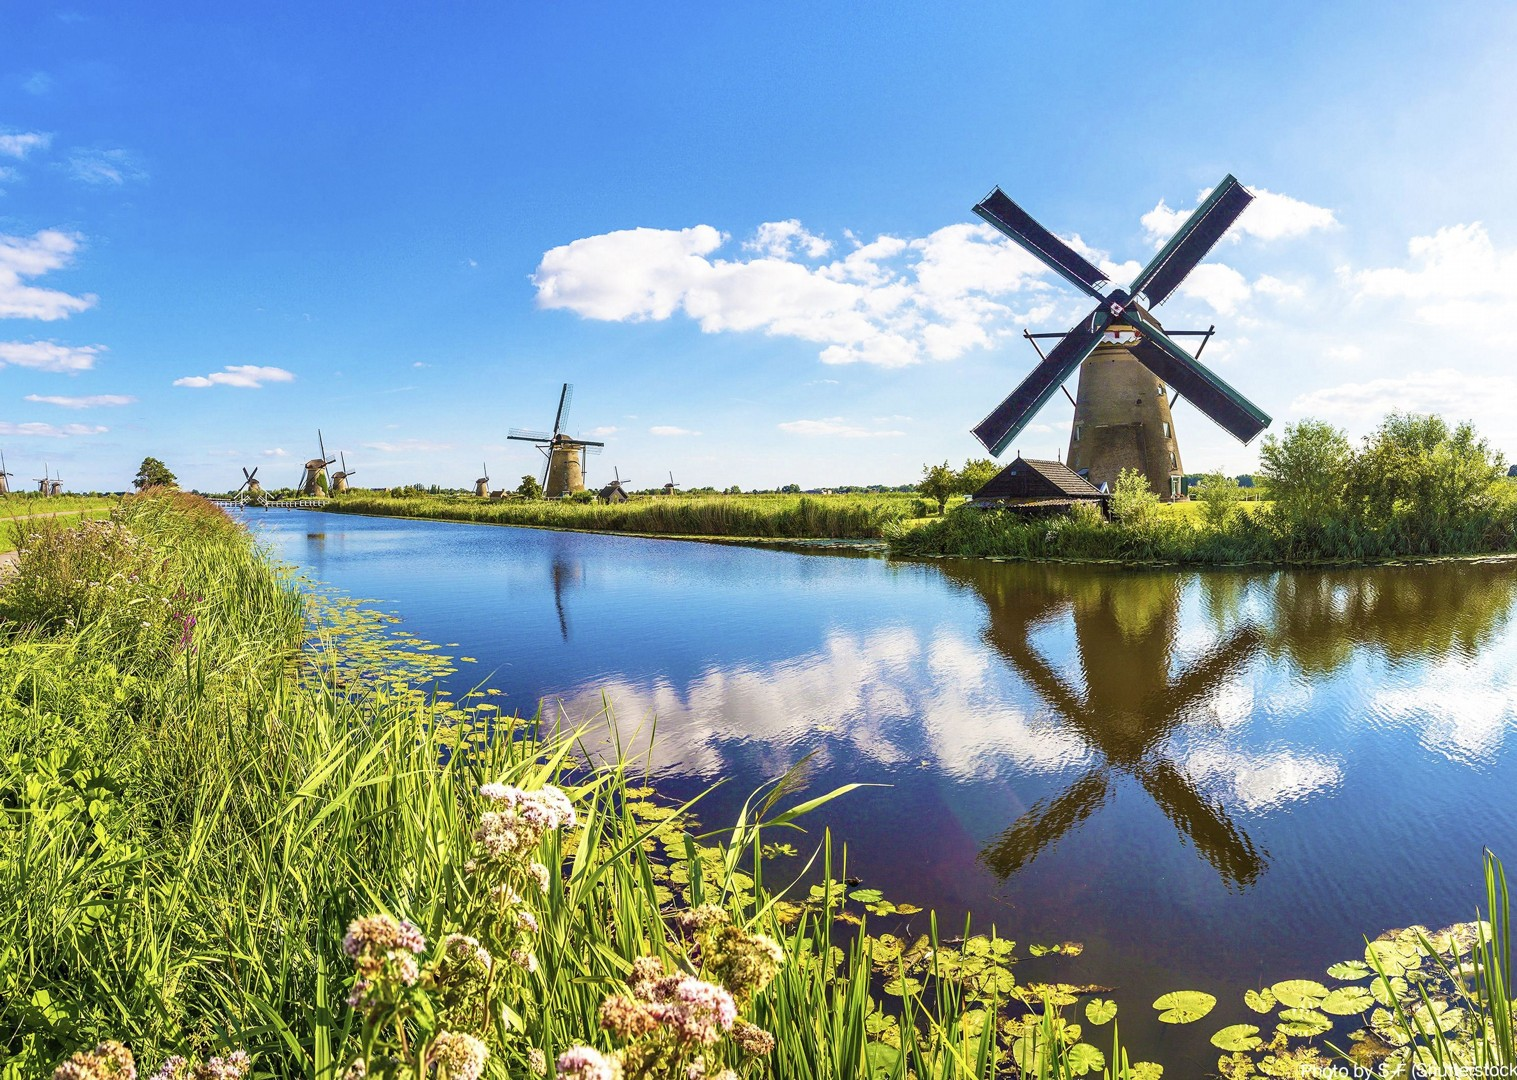 windmills-culture-holland-boat-tour-cycling-holiday-saddle-skedaddle.jpg - Holland and Belgium - Amsterdam to Bruges - Premium Bike and Barge Holiday - Leisure Cycling